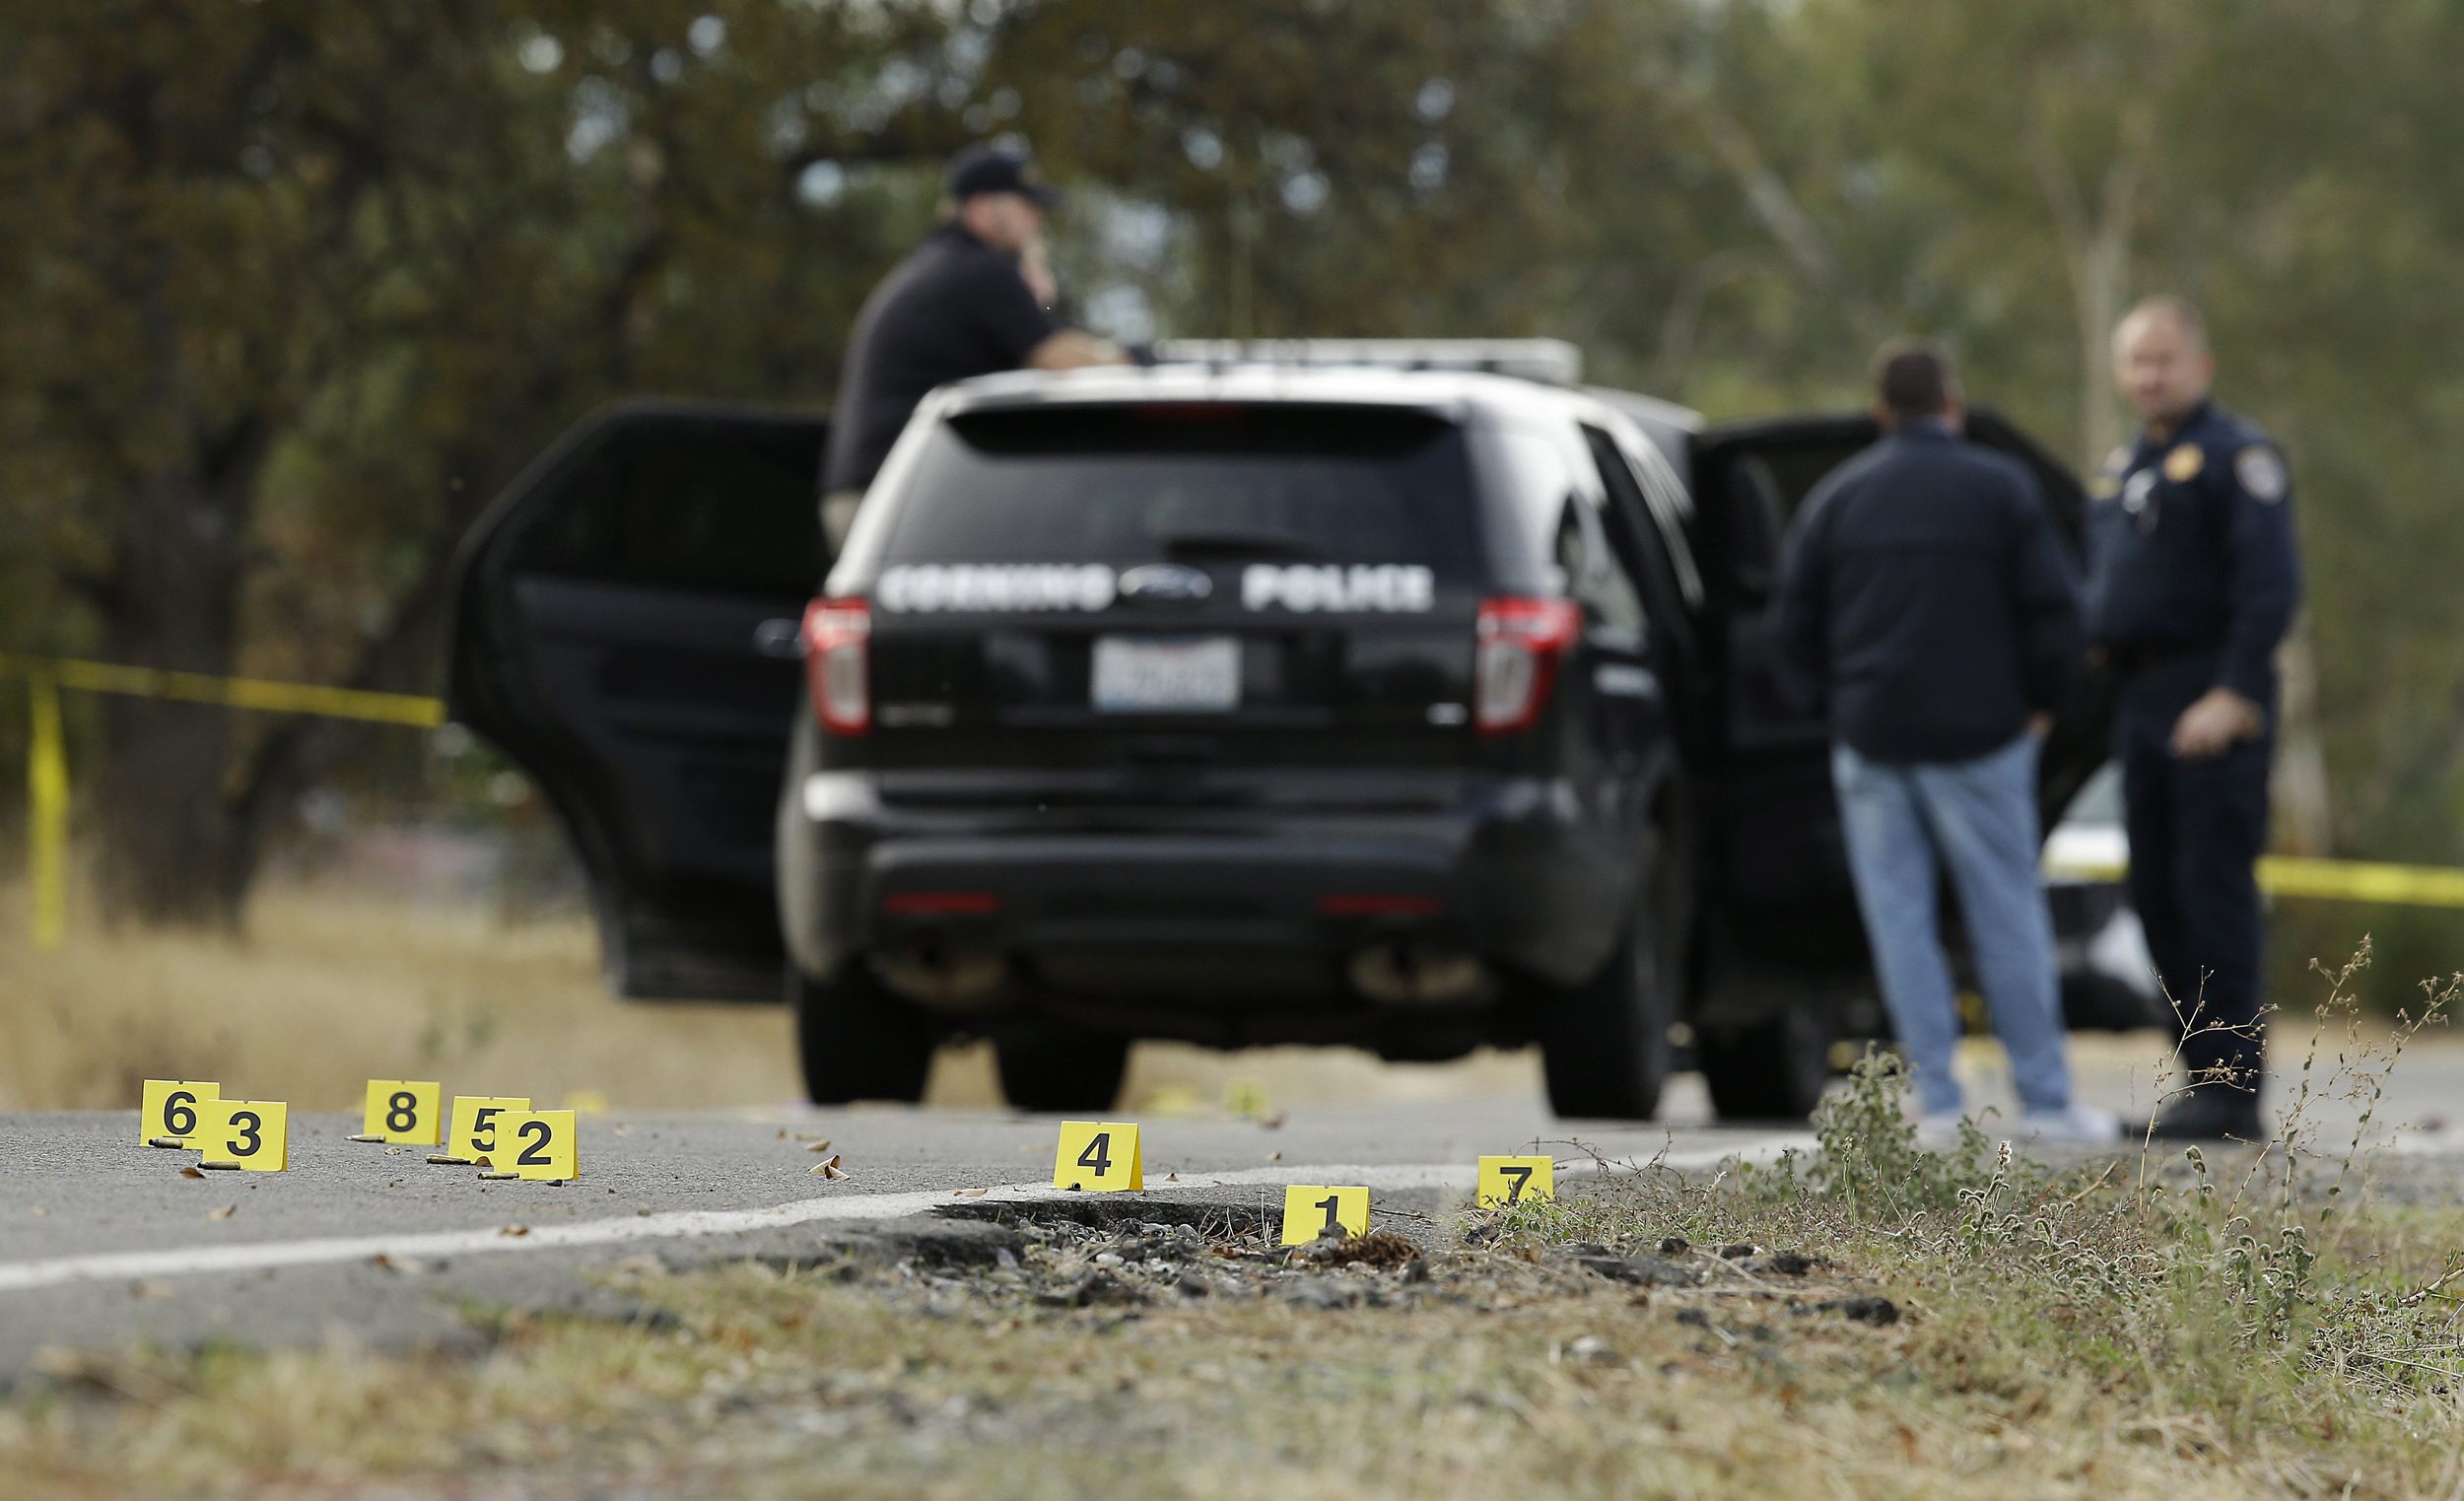 Image: Yellow tags mark where bullet casings were found